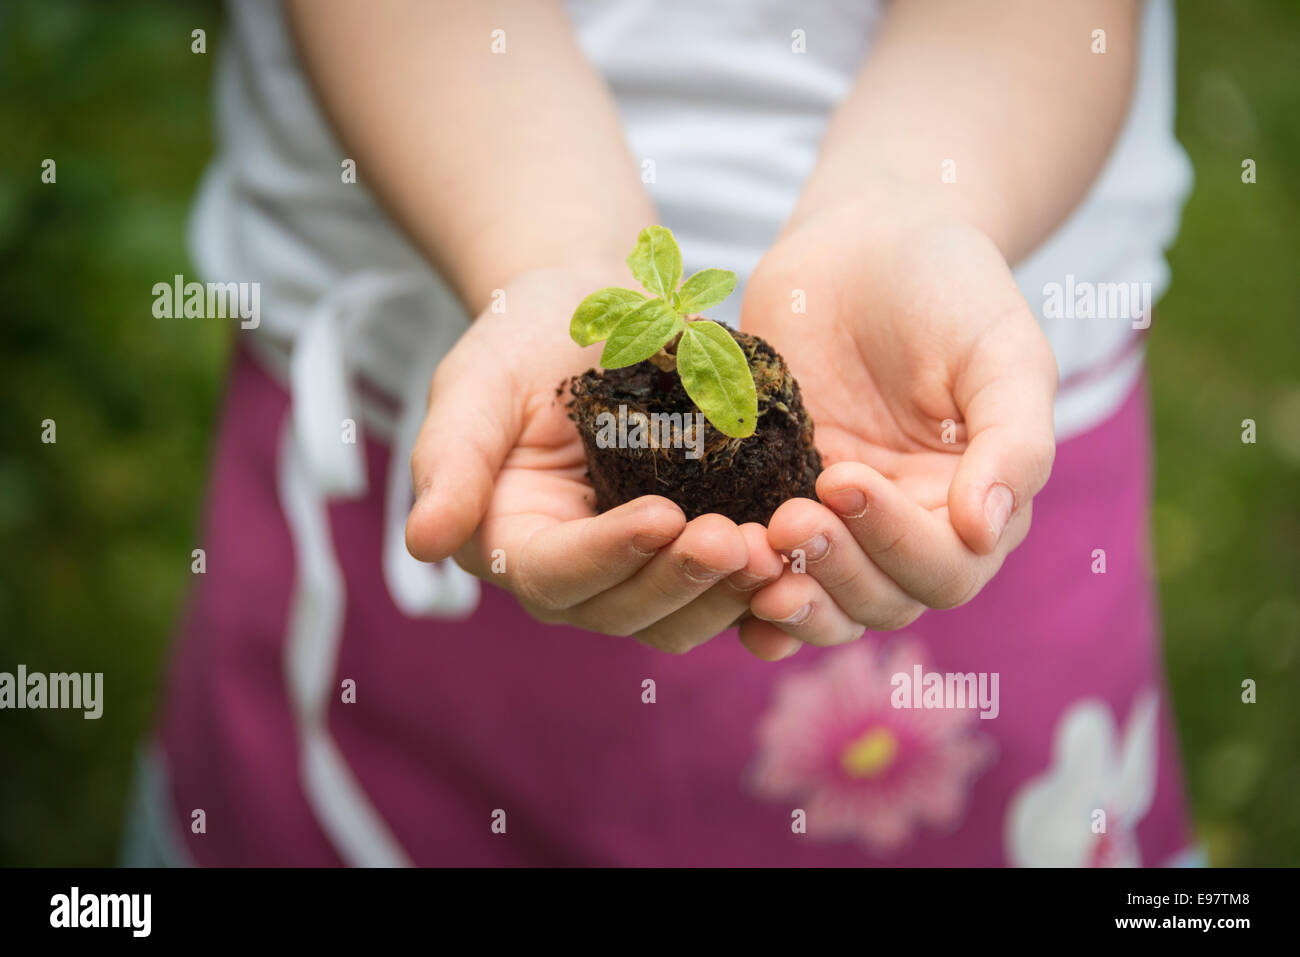 Little girl gardening, holding seedling in hands - Stock Image